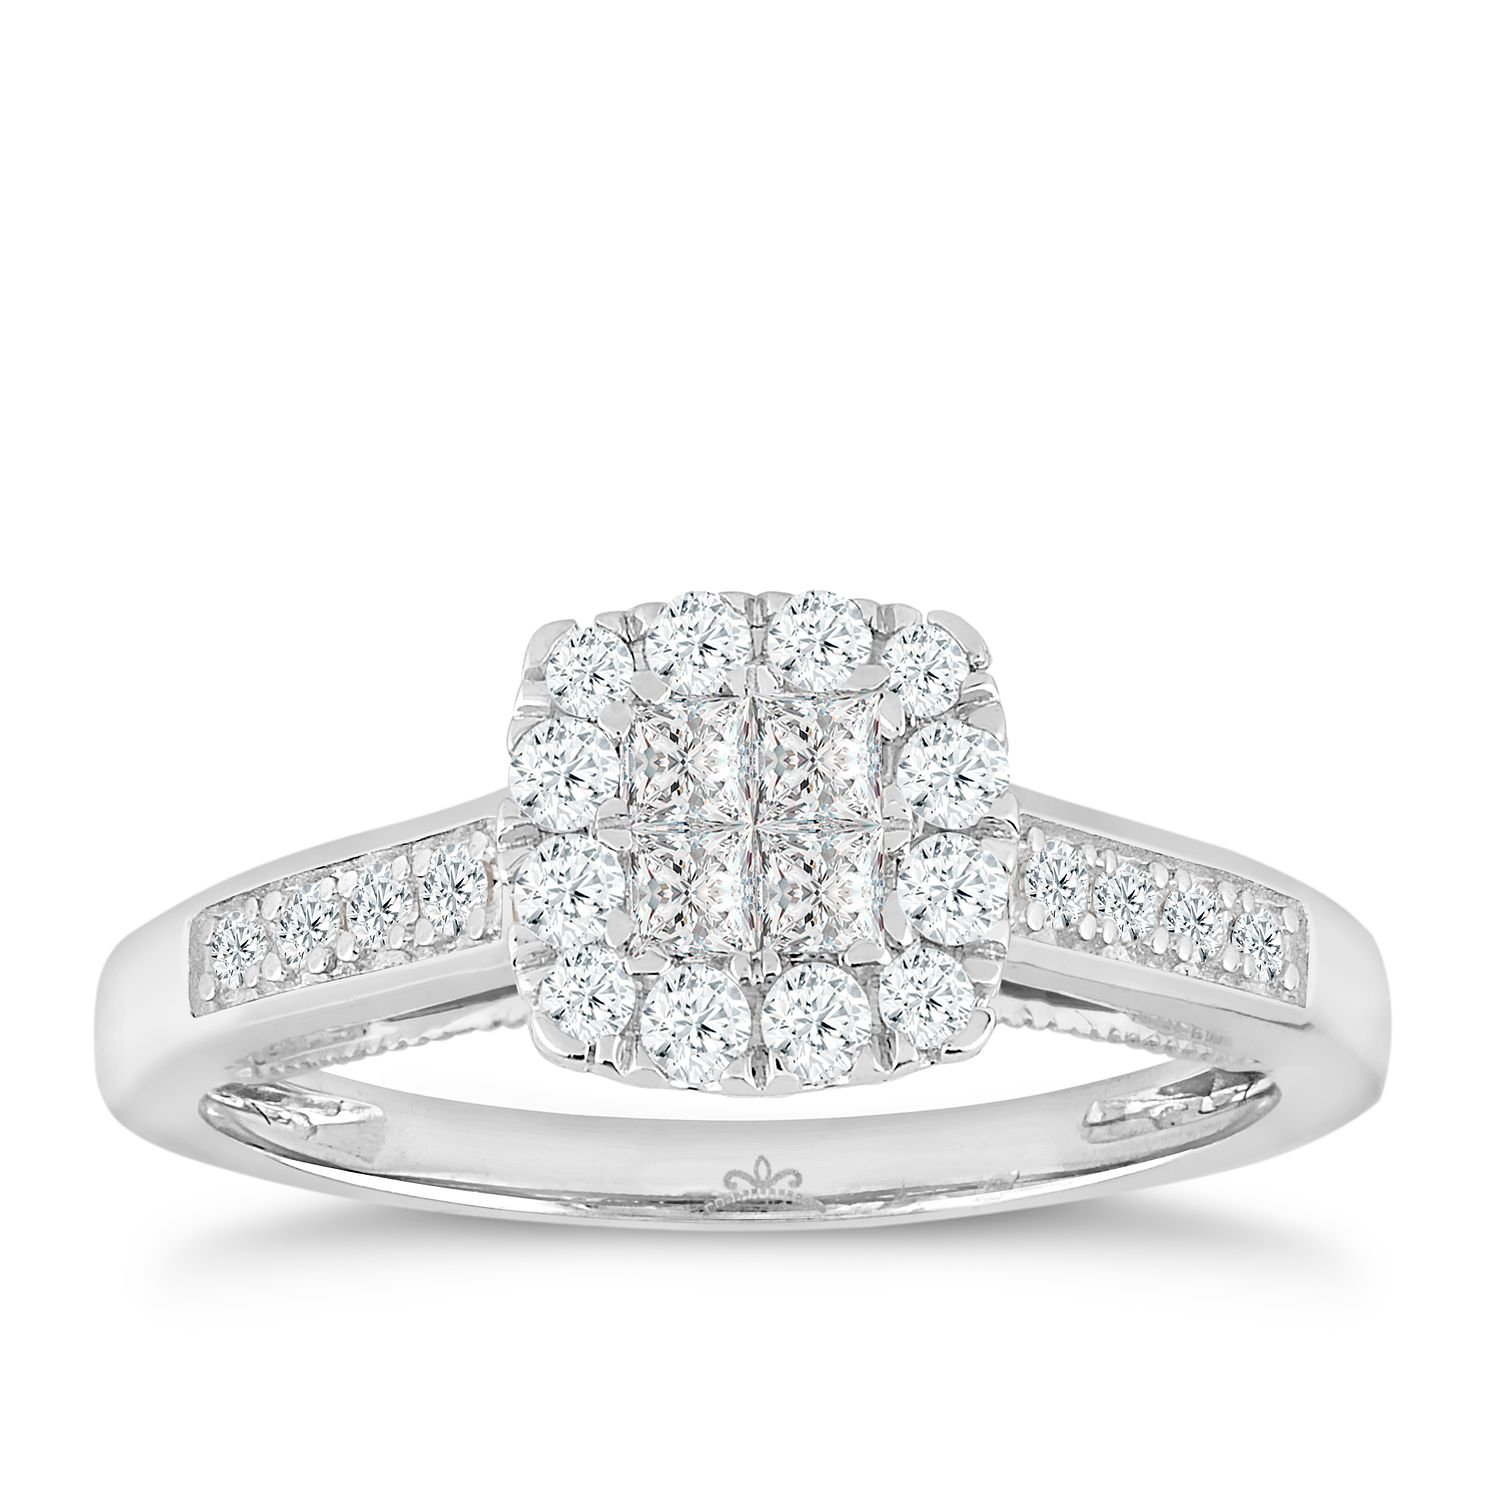 ye cluster promise ring affordable diamond rings round ladies